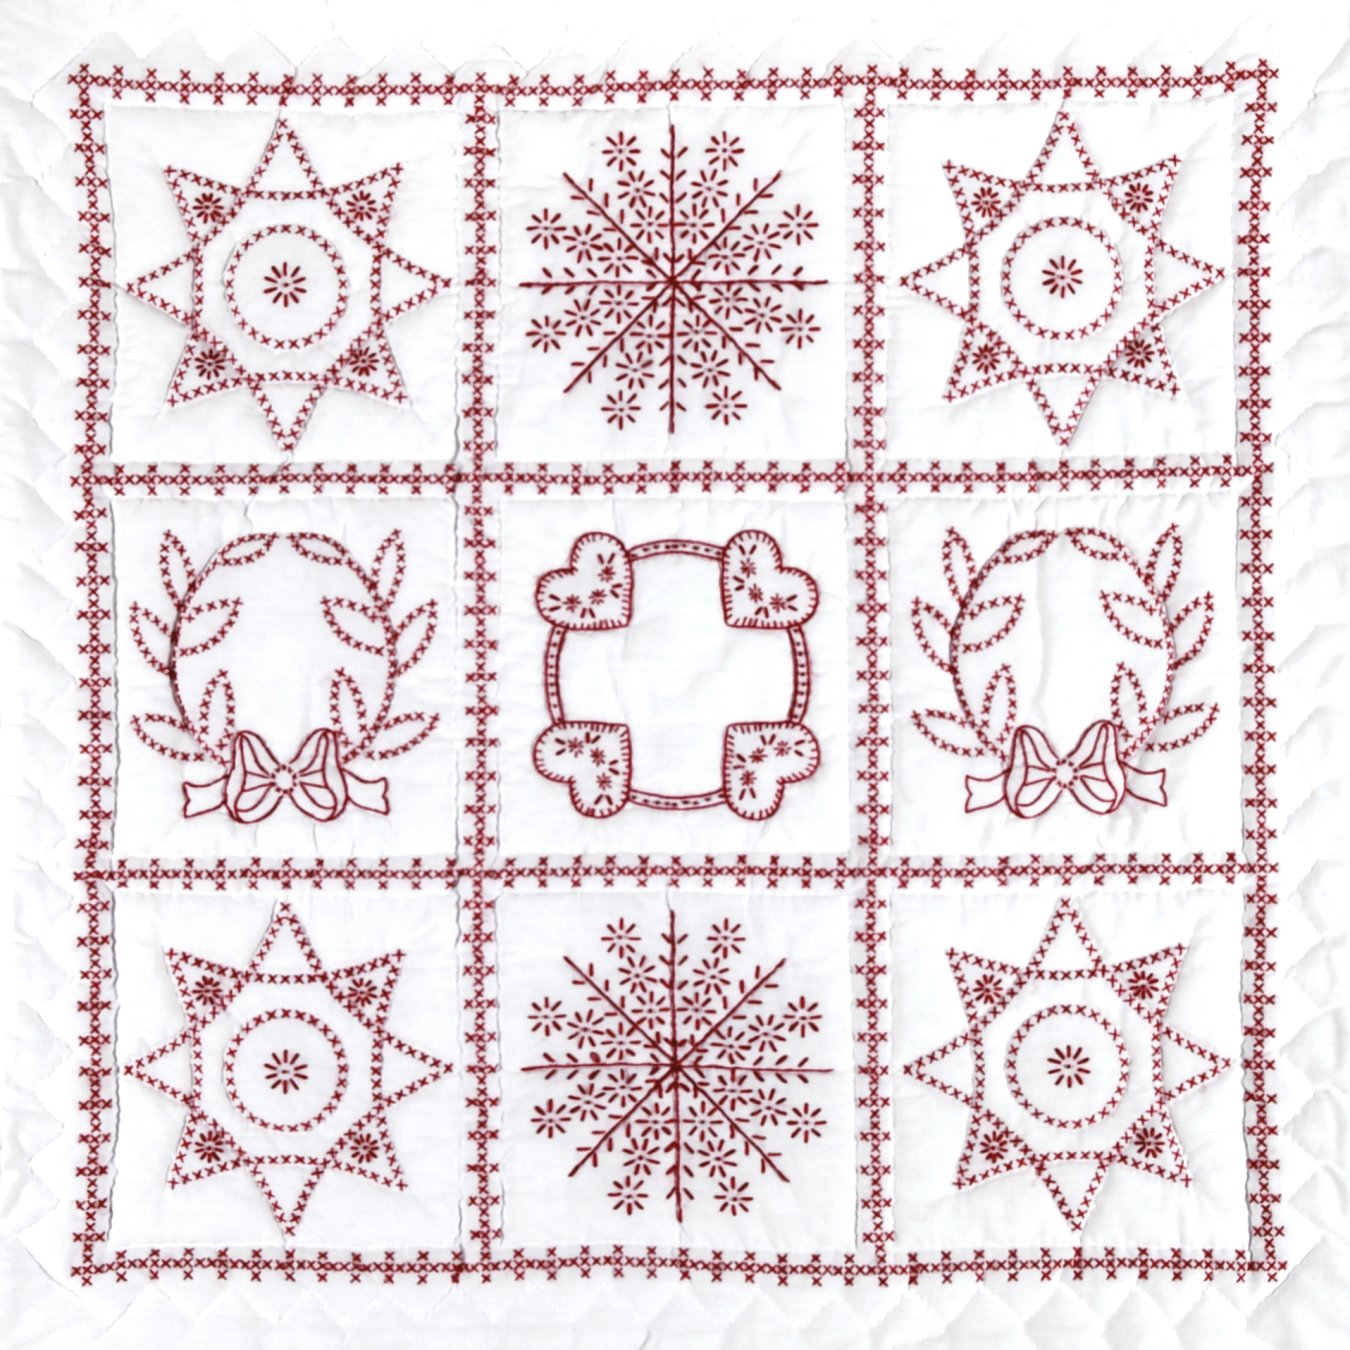 0739-WALL QUILT-36x36-0004